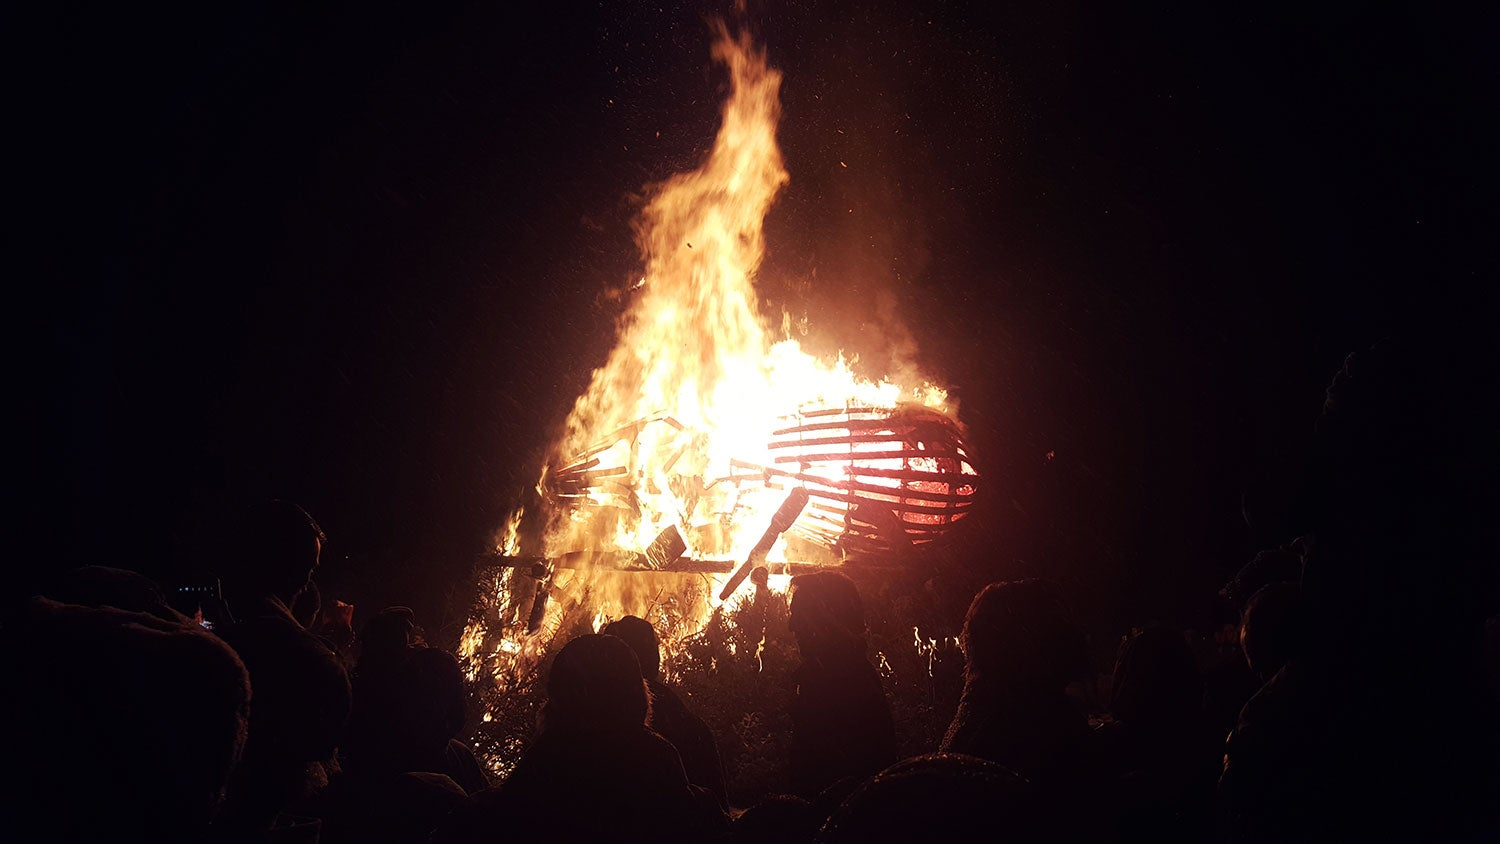 a wooden beetle burning at night around a crowd